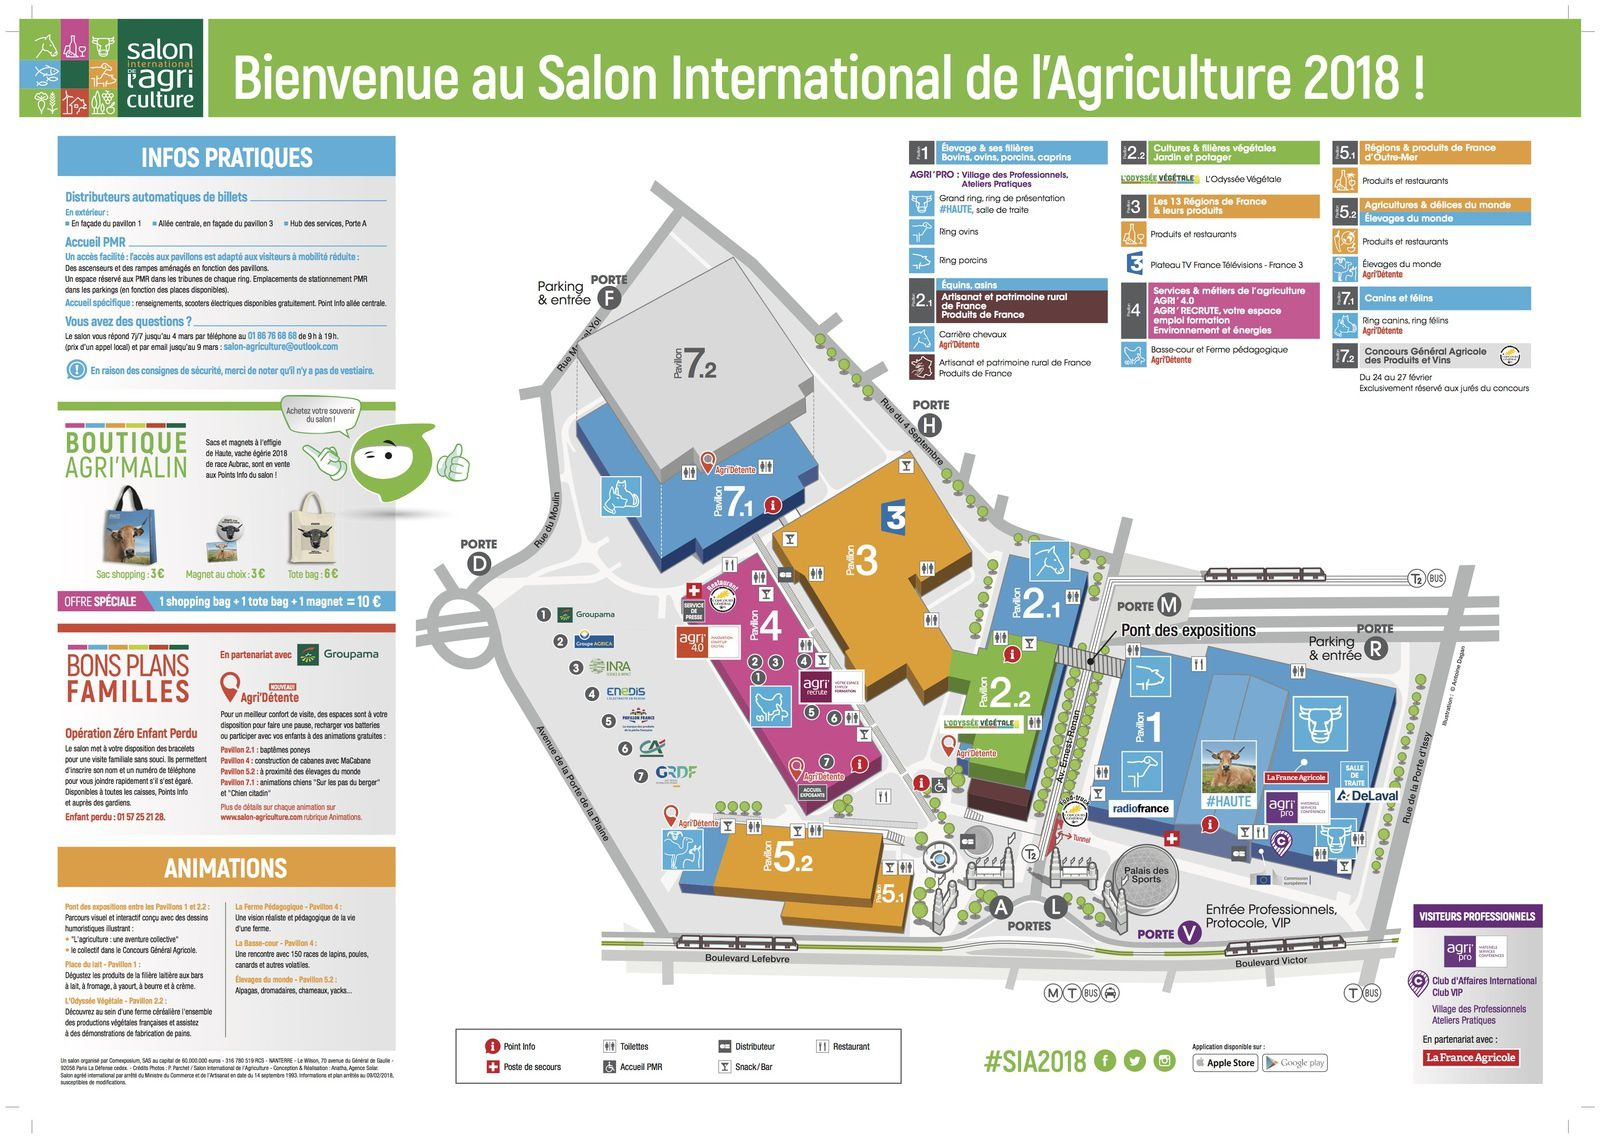 Salon de l 39 agriculture mill sime 2018 c t loisirs news - Tarif parking salon de l agriculture ...